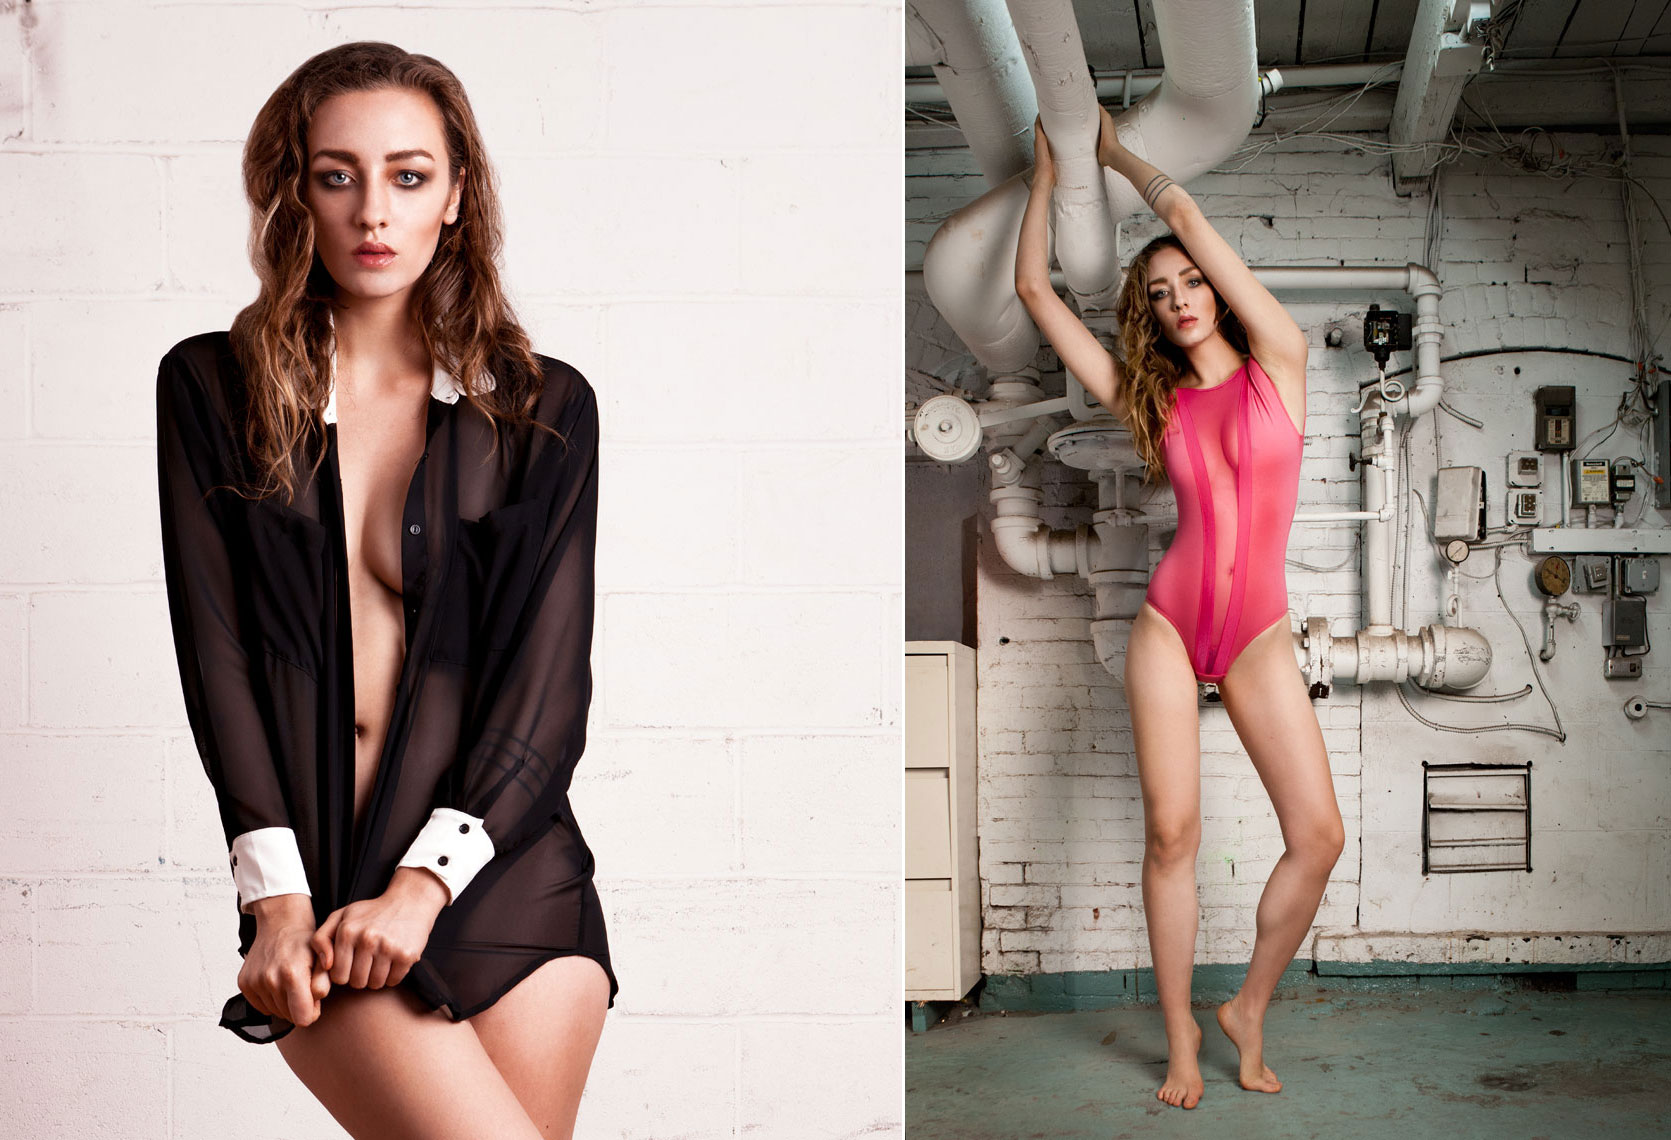 Hanna wearing black silk shirt and pink lace bodysuit from American Apparel photographed by David Murcko.